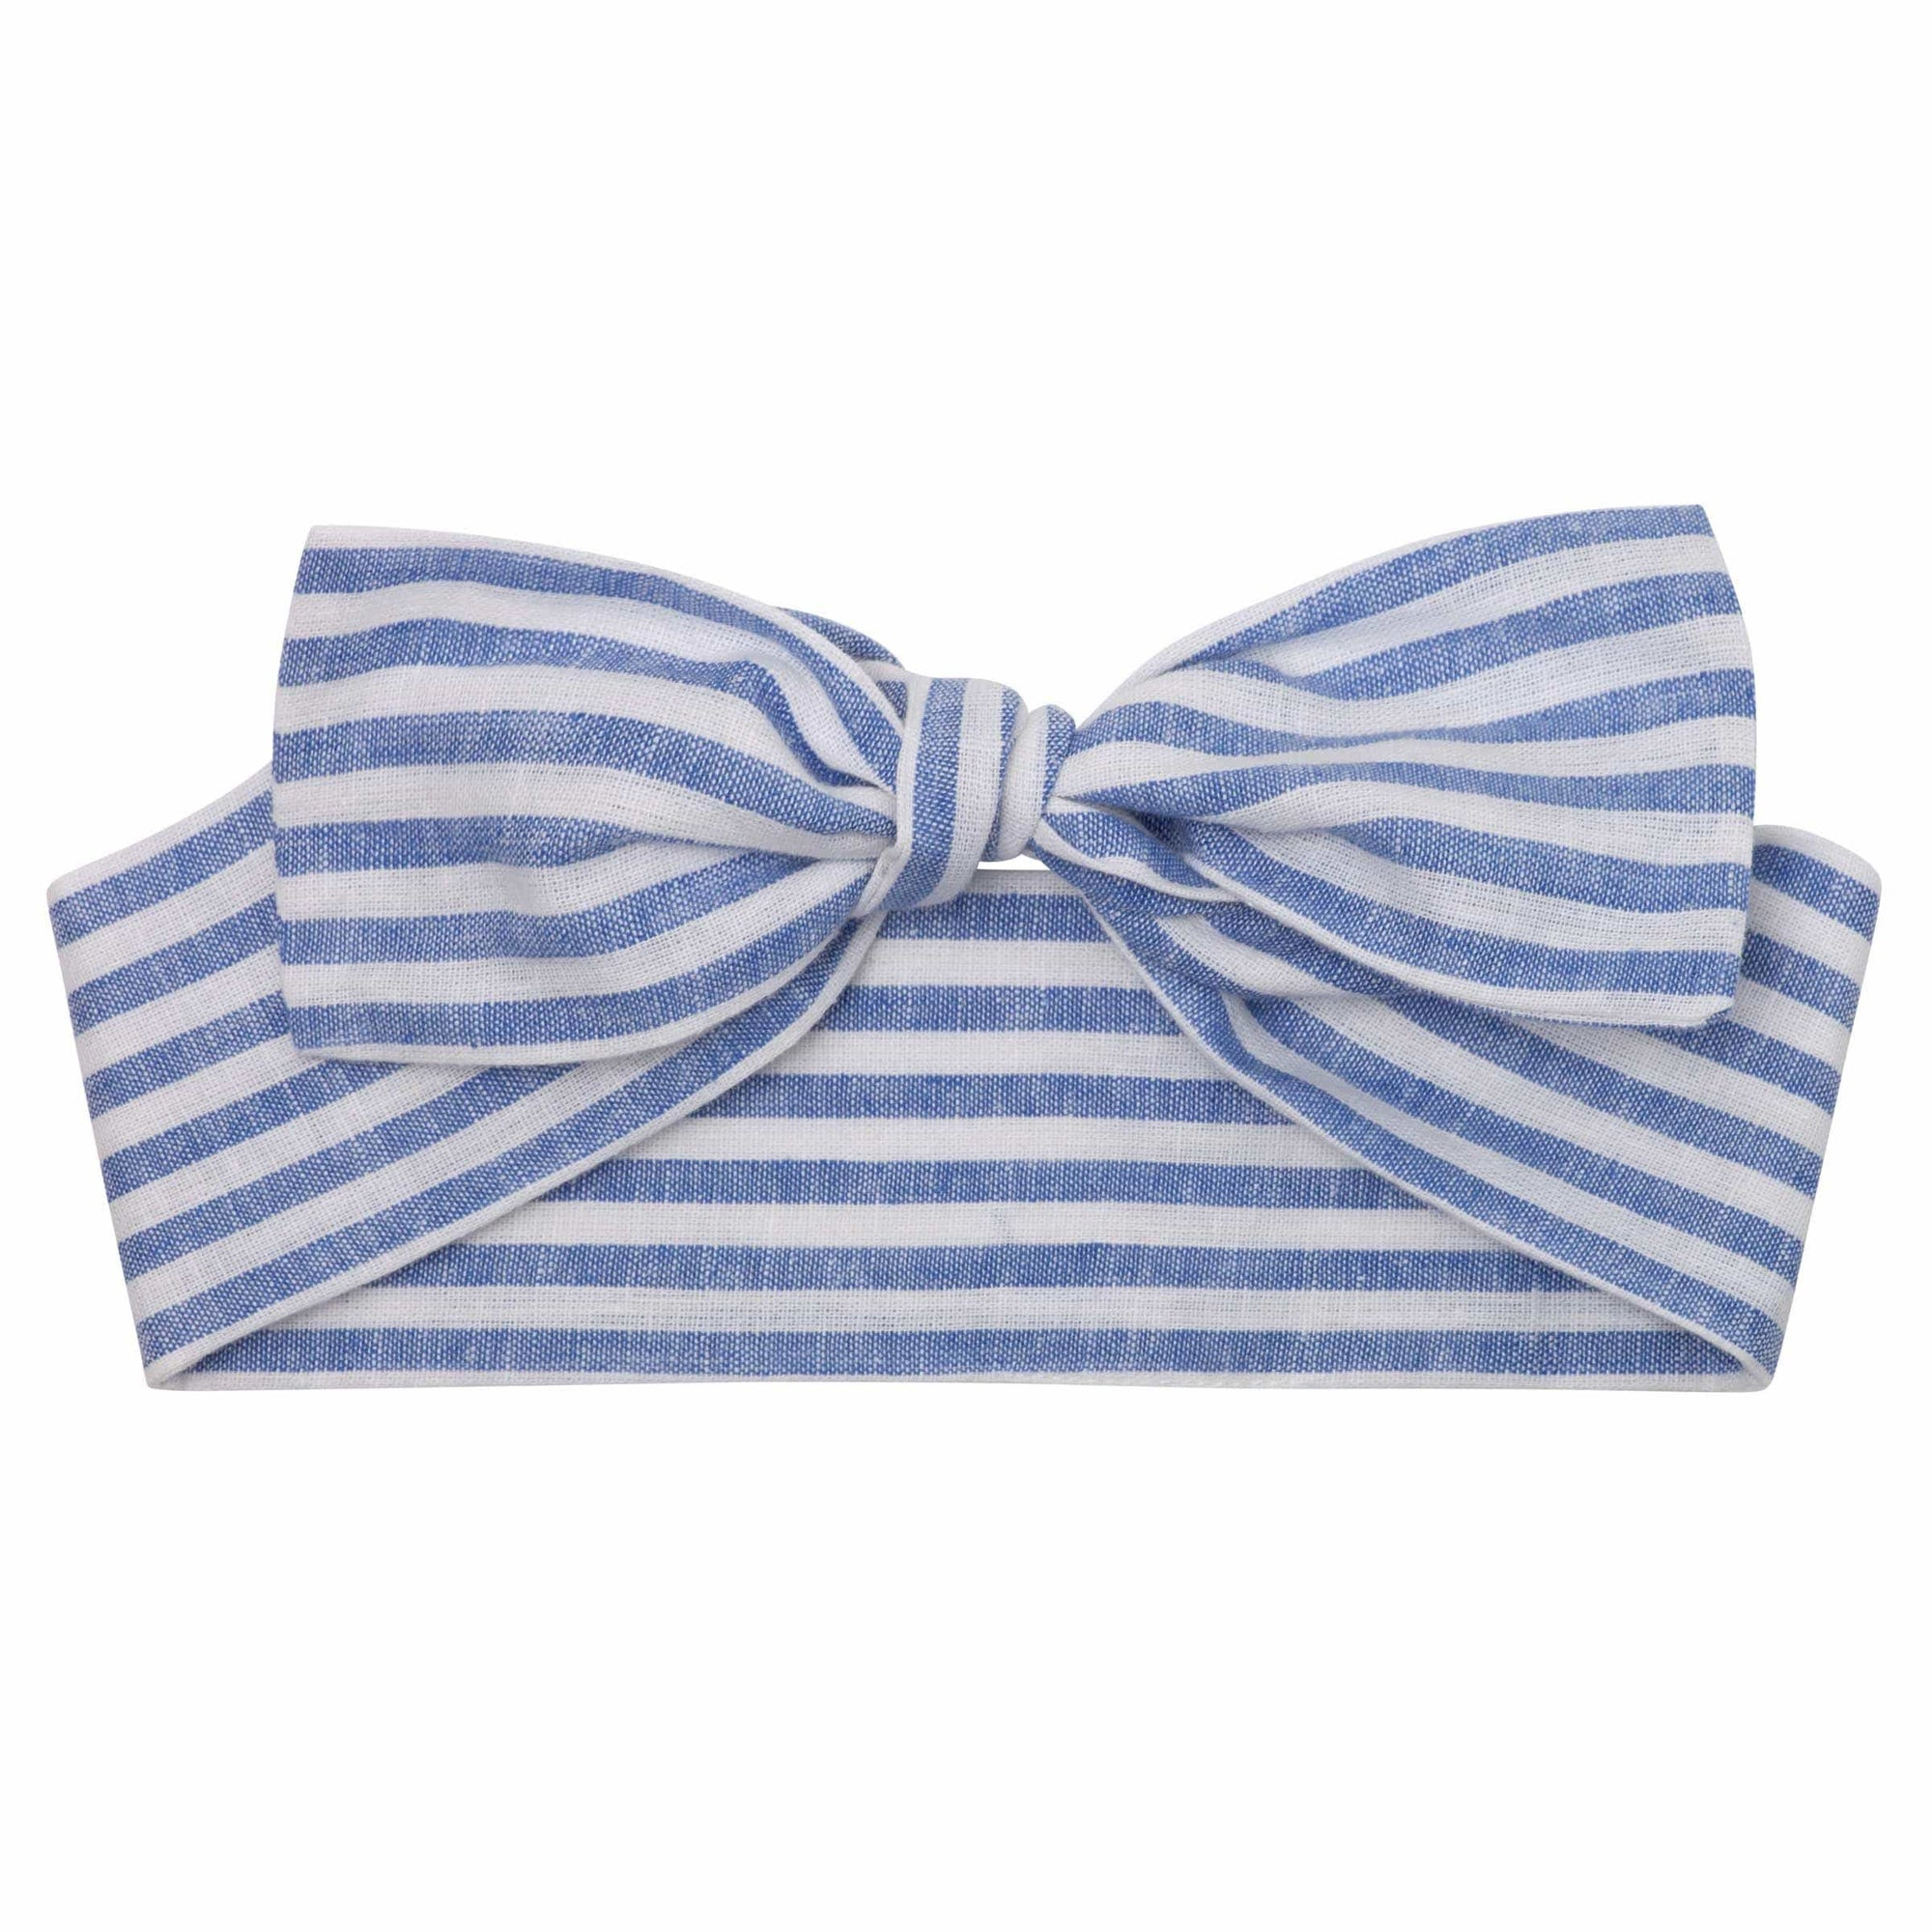 Designer Kidz Linen Headband - Seaside Stripe O/S